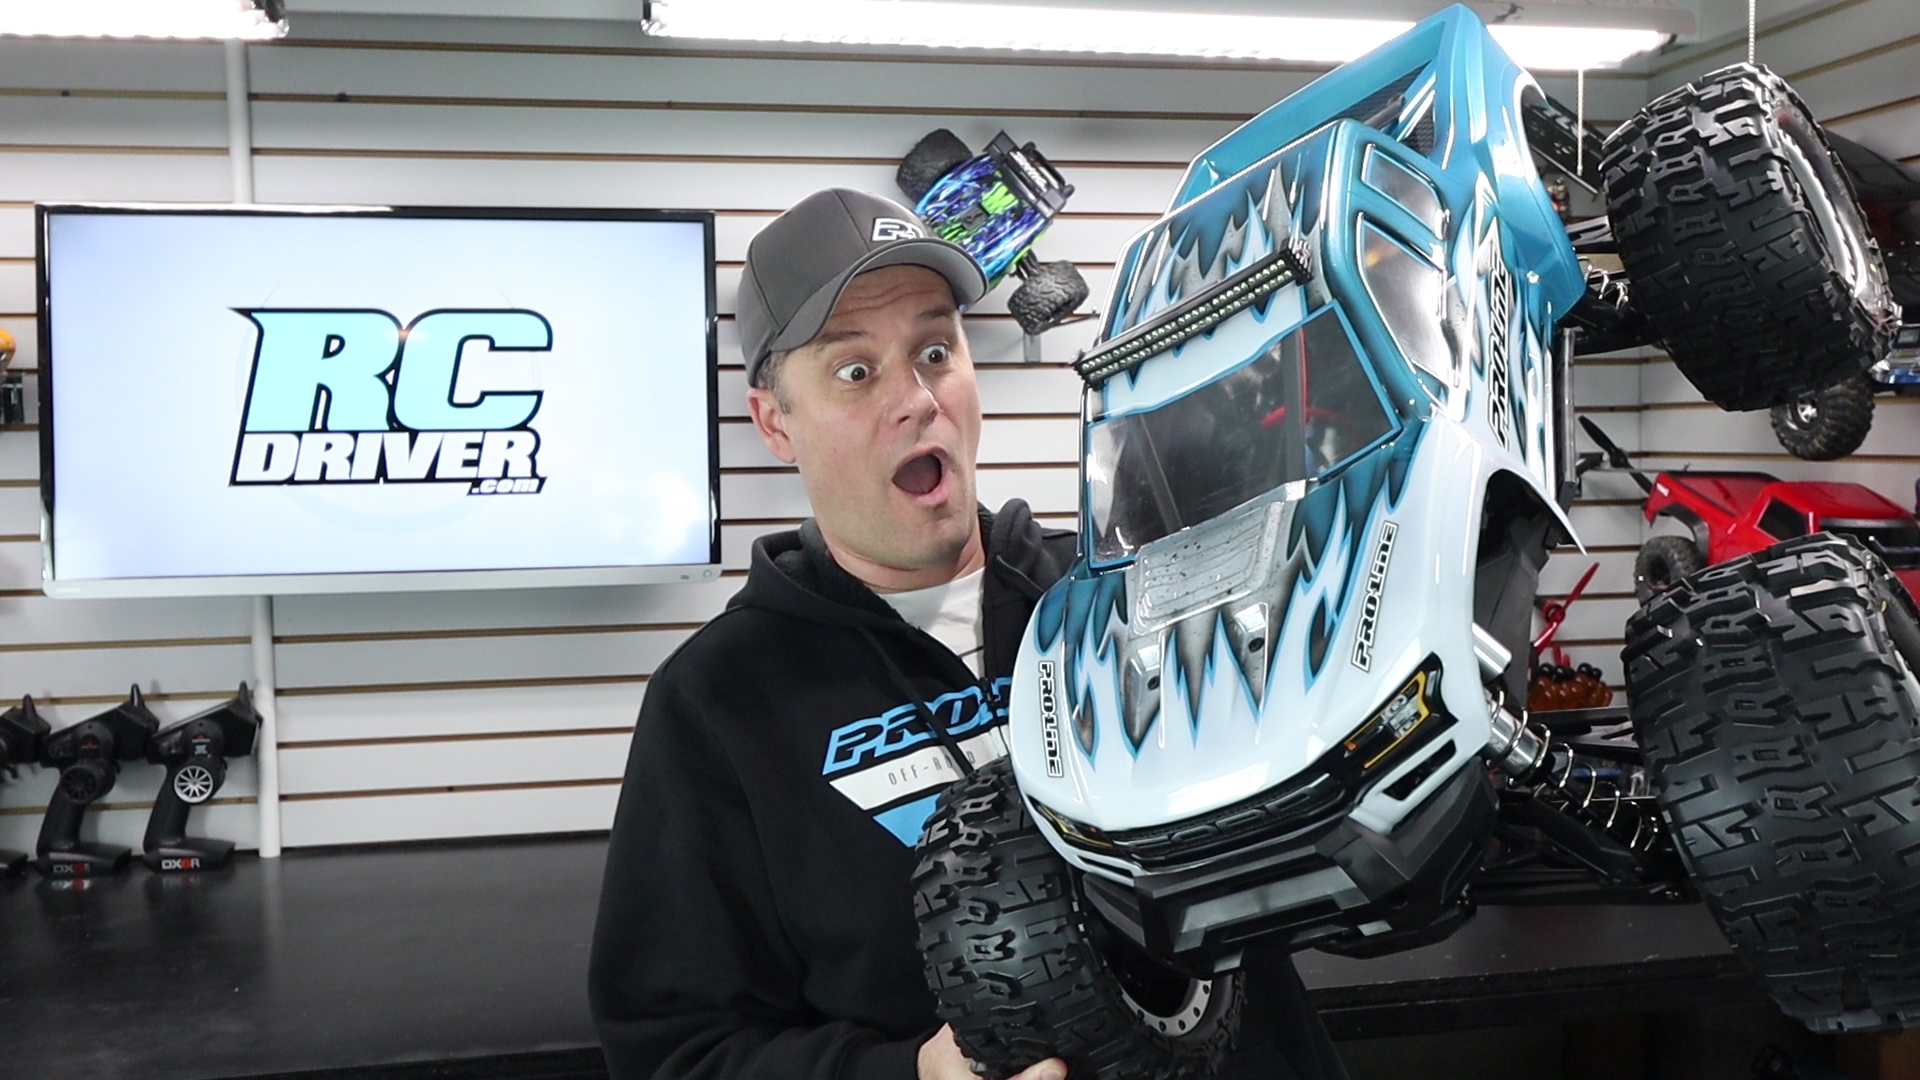 Killer Look! Pro-Line Racing Upgraded Traxxas X-Maxx Build - Giveaway Series Part 3